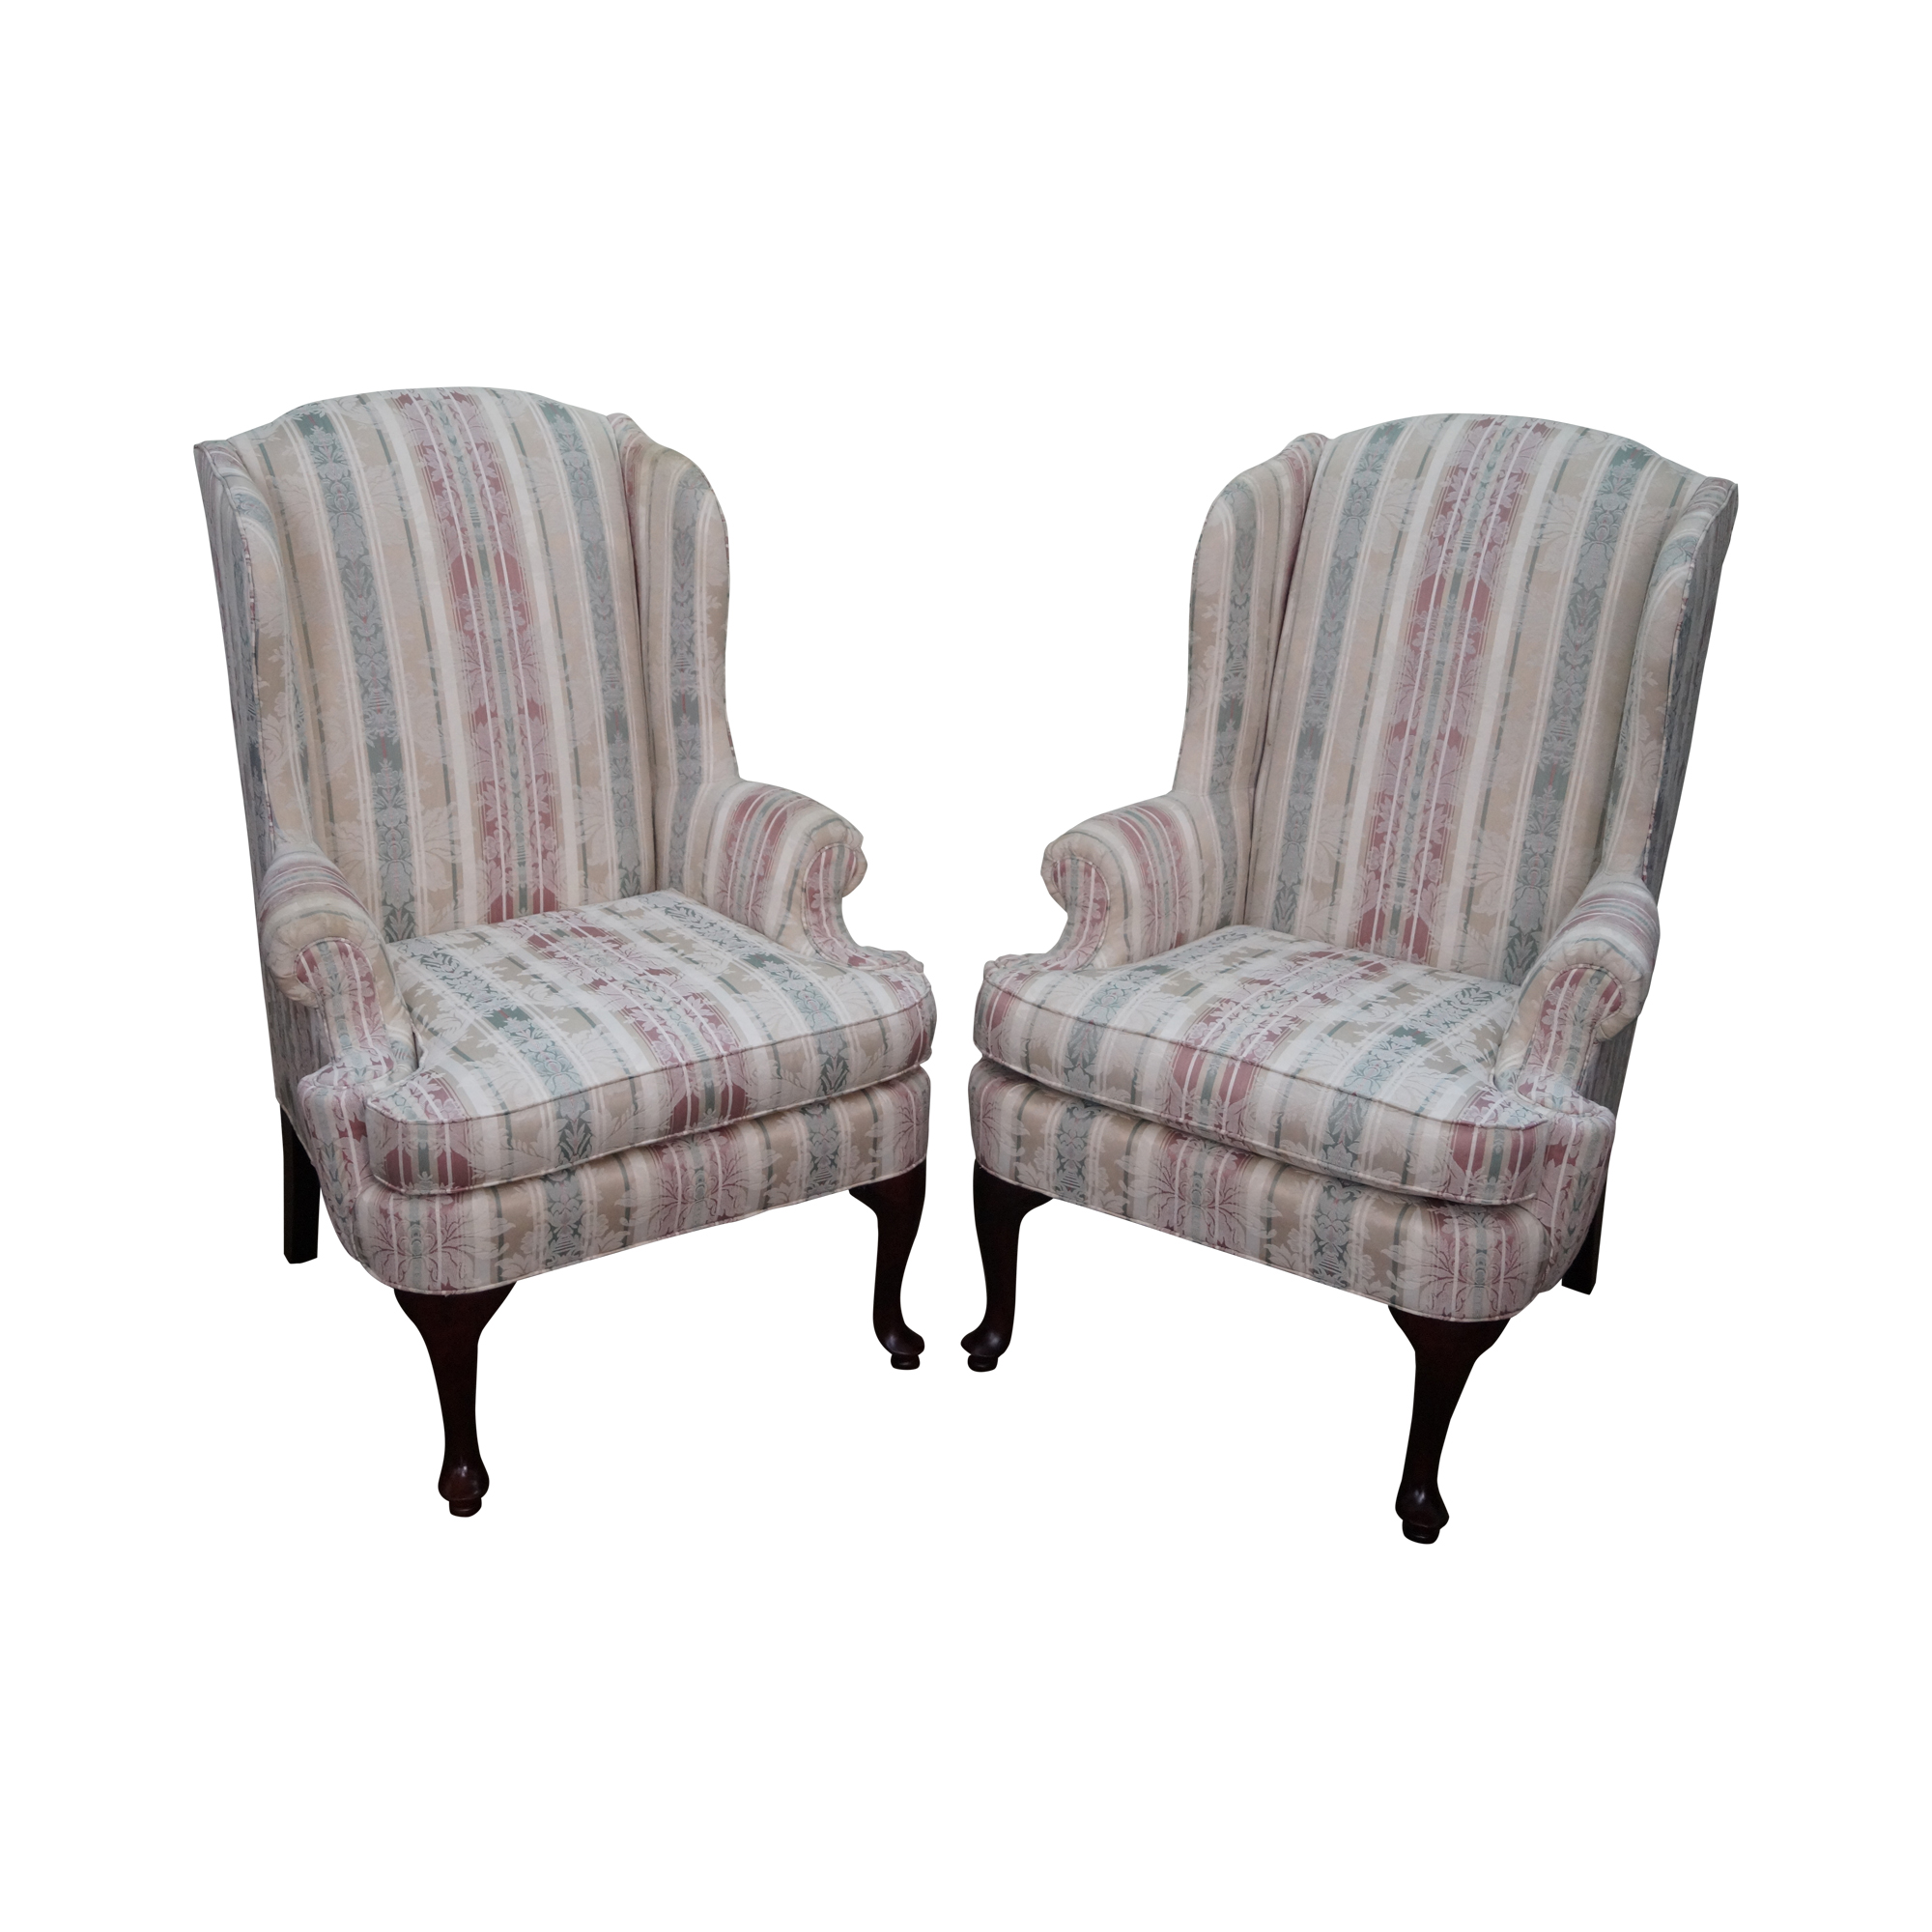 Thomasville Traditional Queen Anne Wing Chairs 2 Chairish : 717dee22 504c 4fae a329 d2f1126569d8 from www.chairish.com size 2000 x 2000 png 1656kB